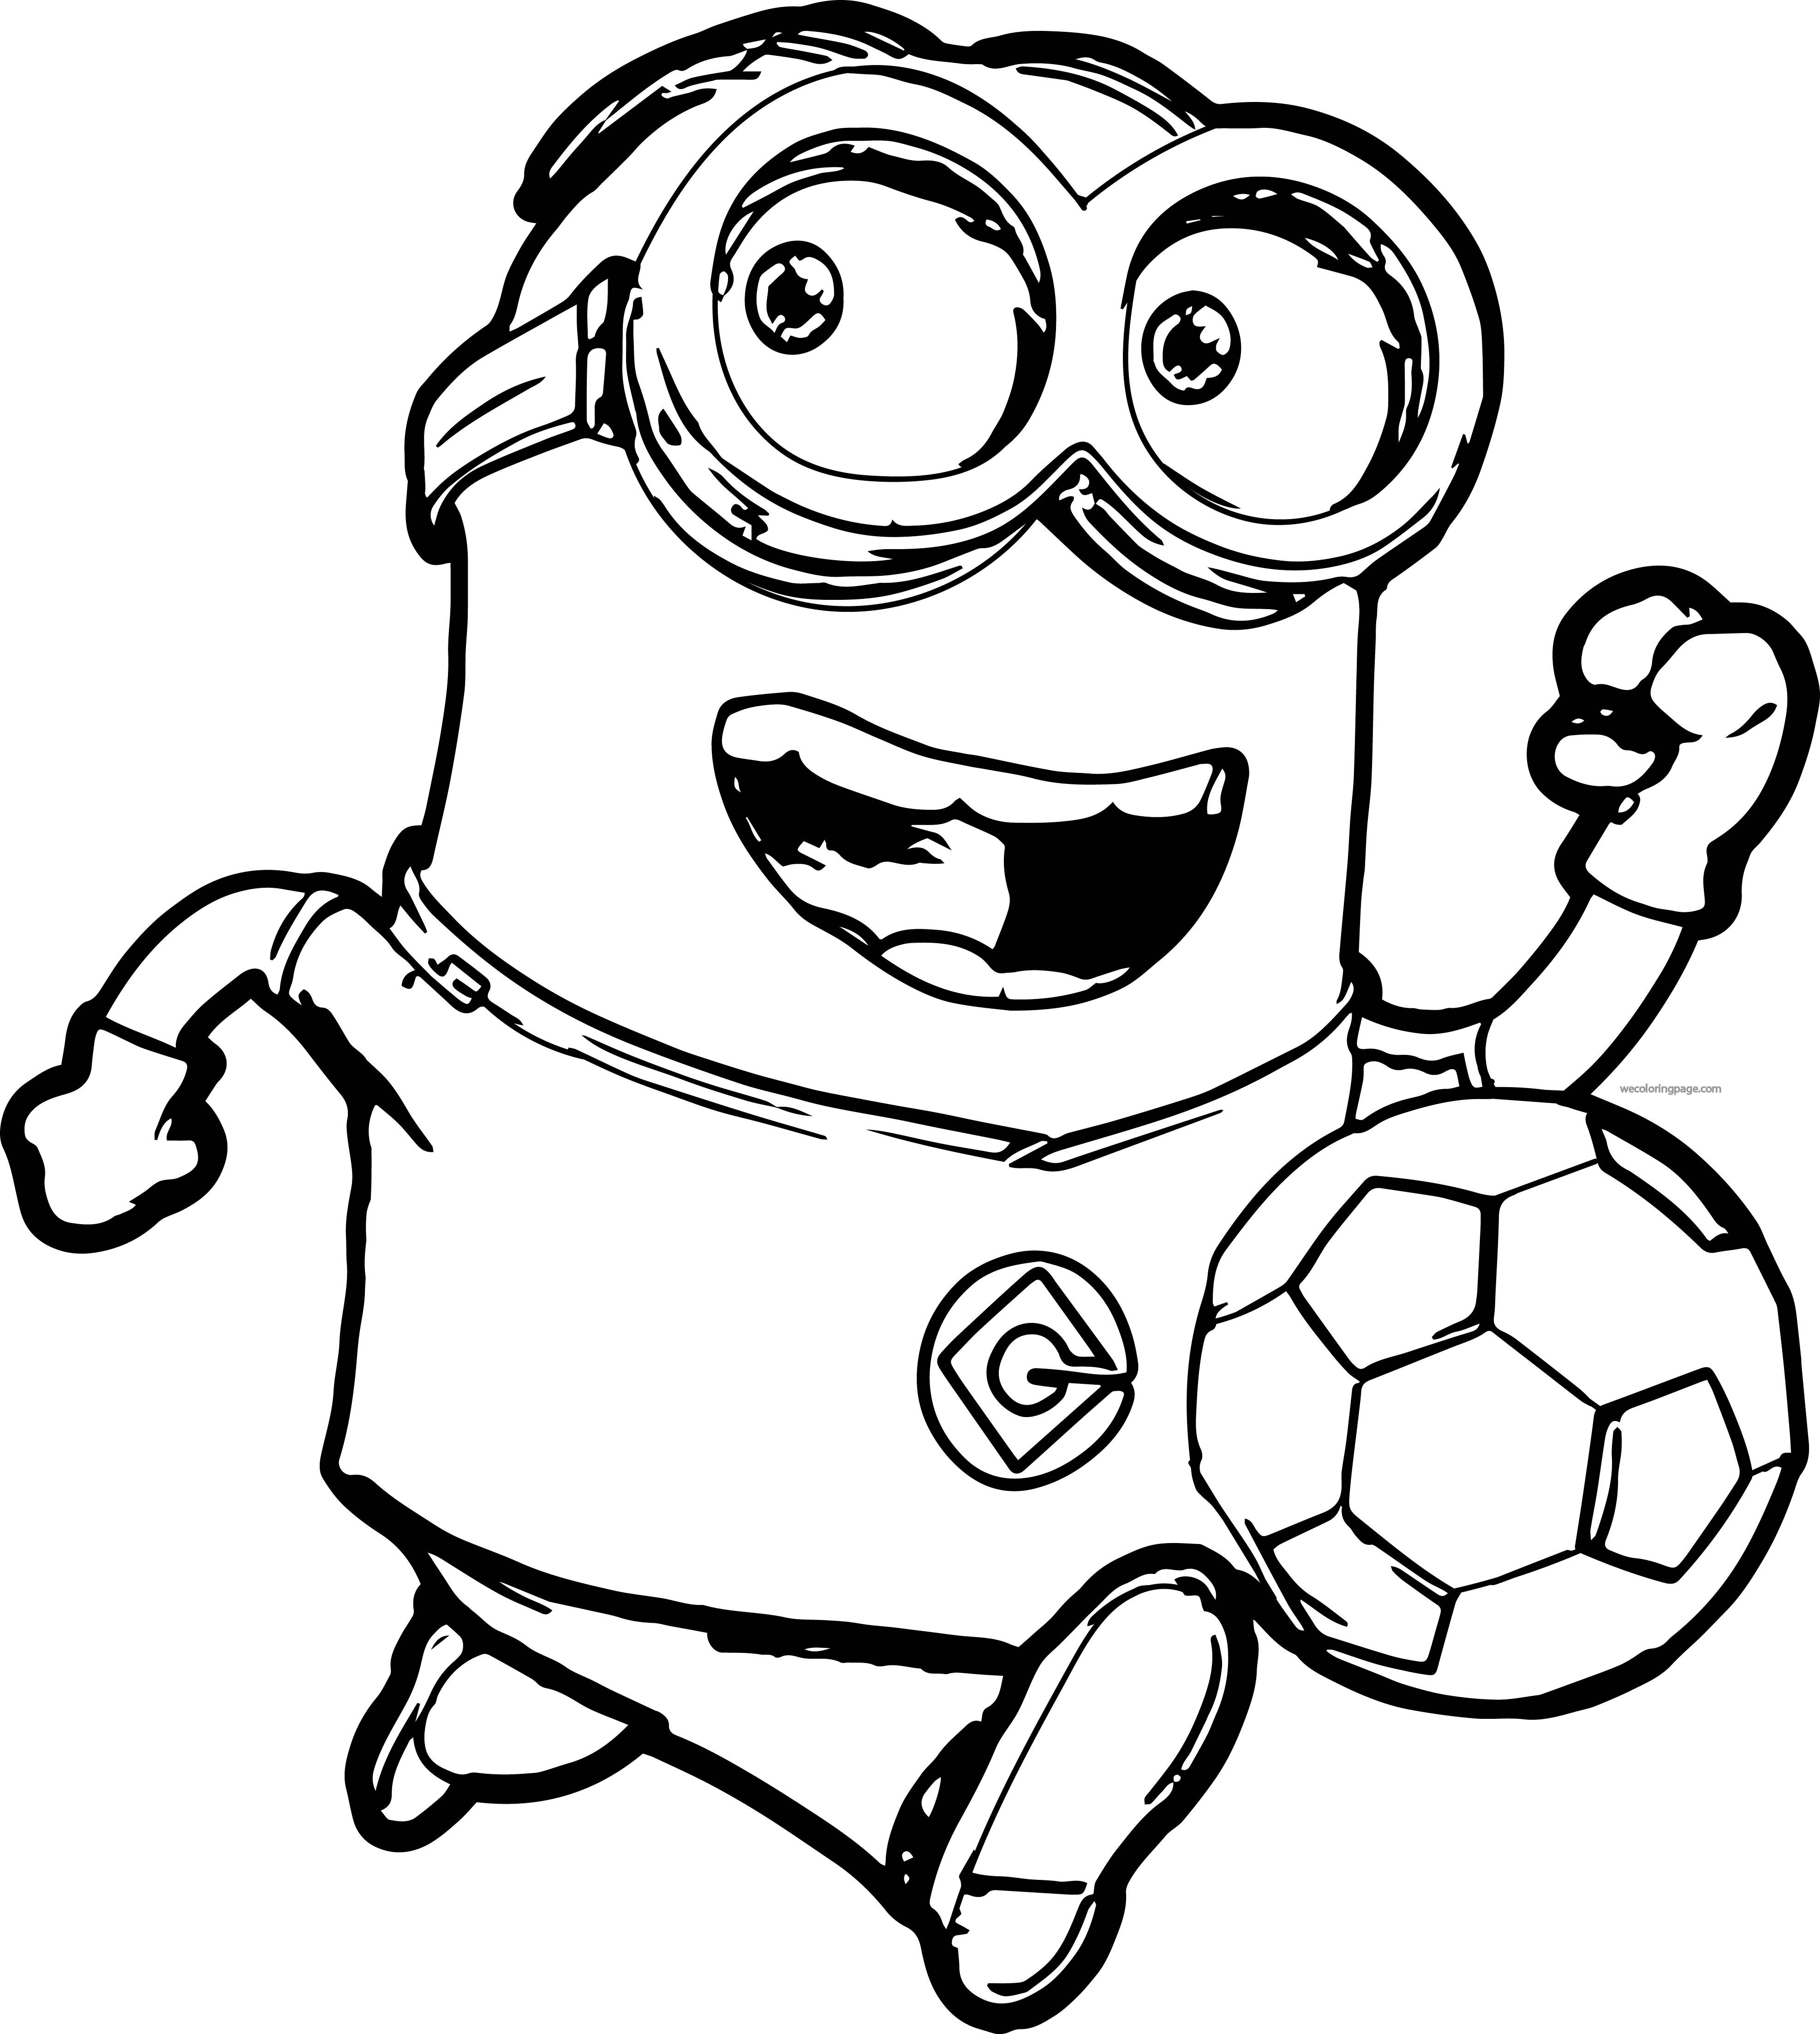 soccer player colouring pages xabi playing soccer coloring pages hellokidscom pages colouring player soccer